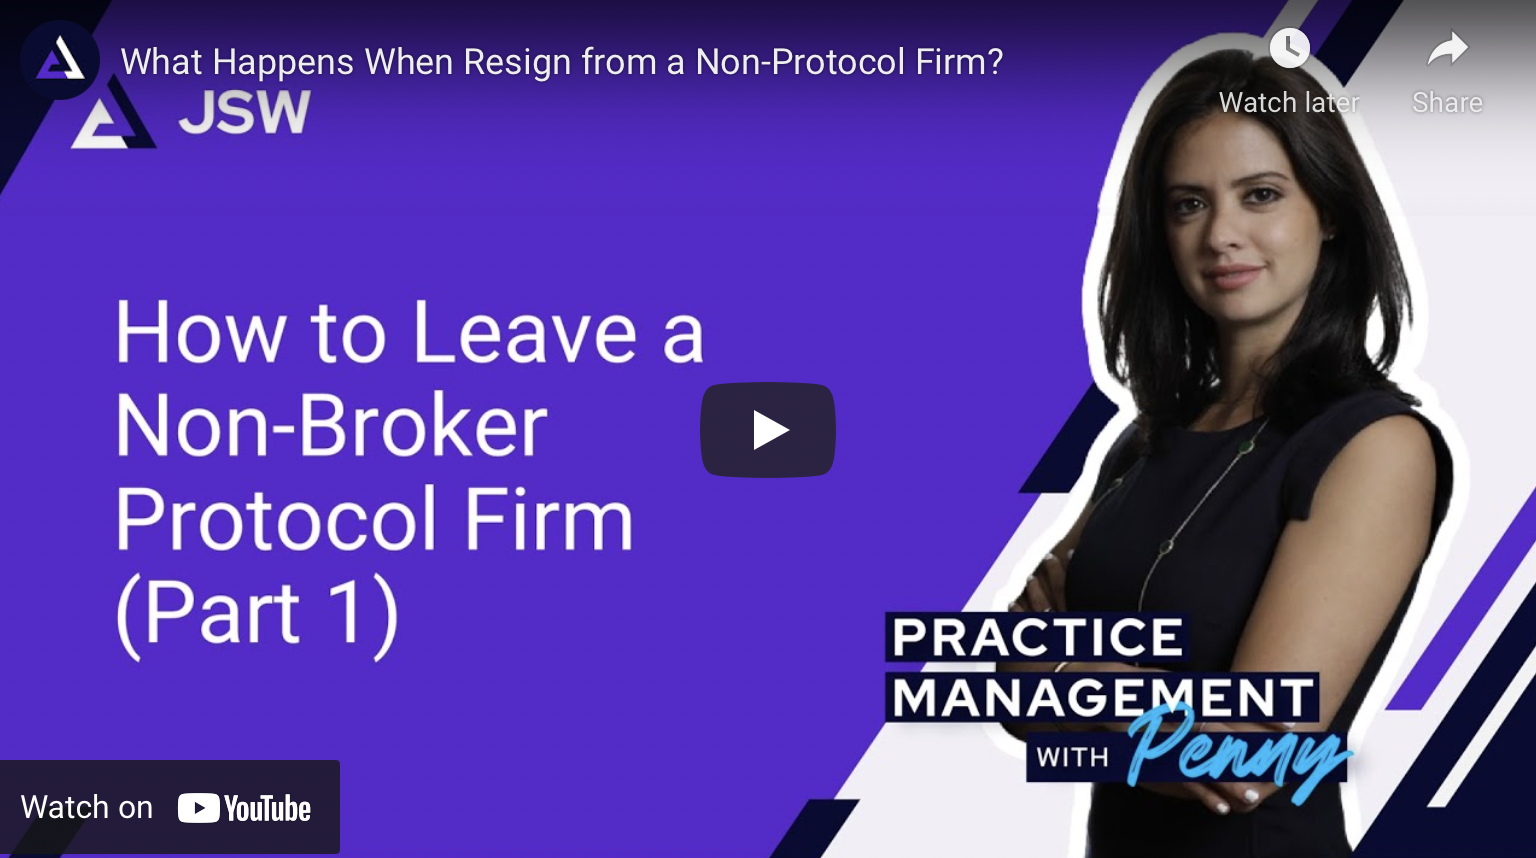 Resign From a Non-Broker Protocol Firm